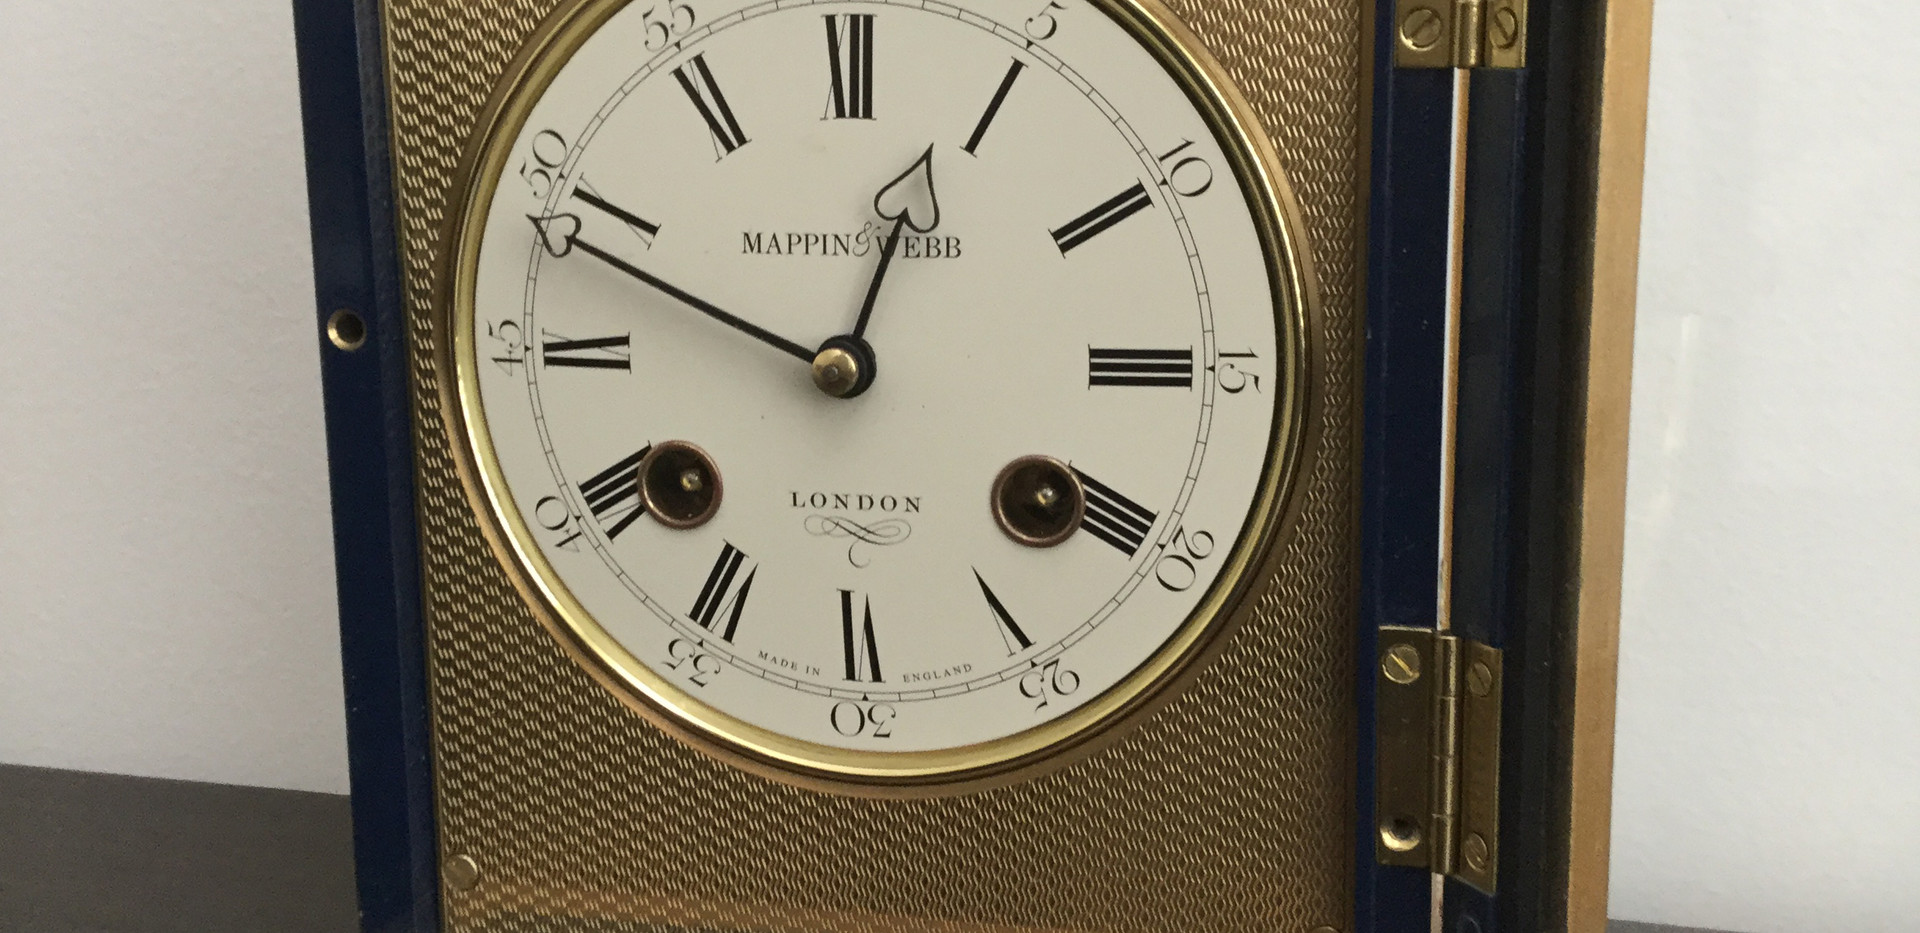 Mappin & Webb Clock Face Details